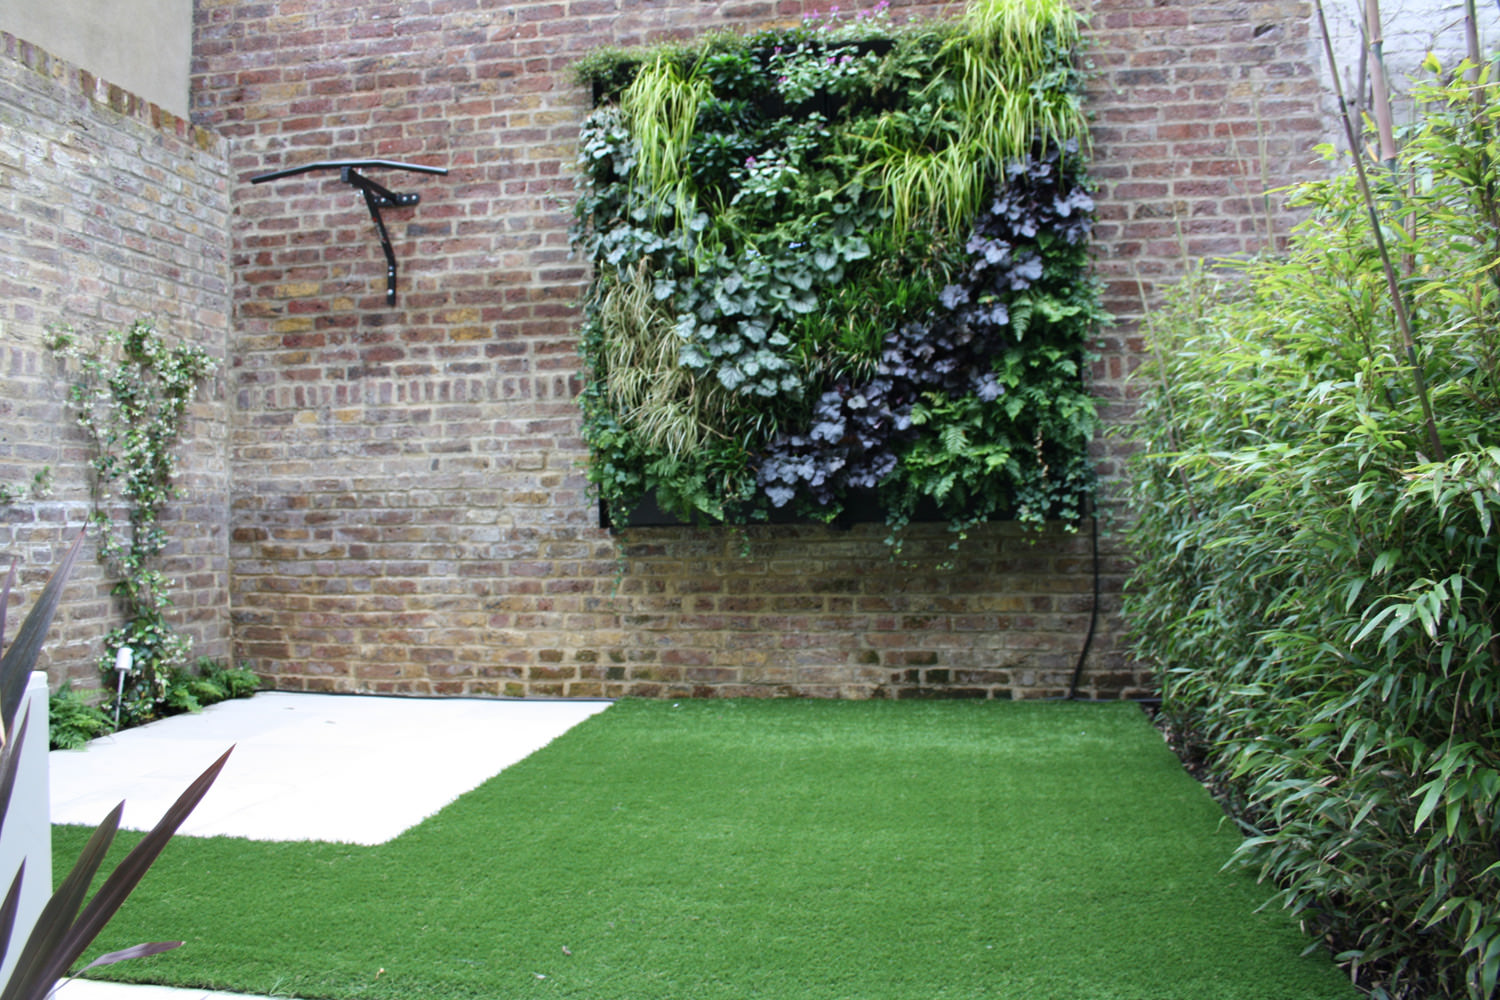 Top 10 london garden designs garden club london for Best small garden designs